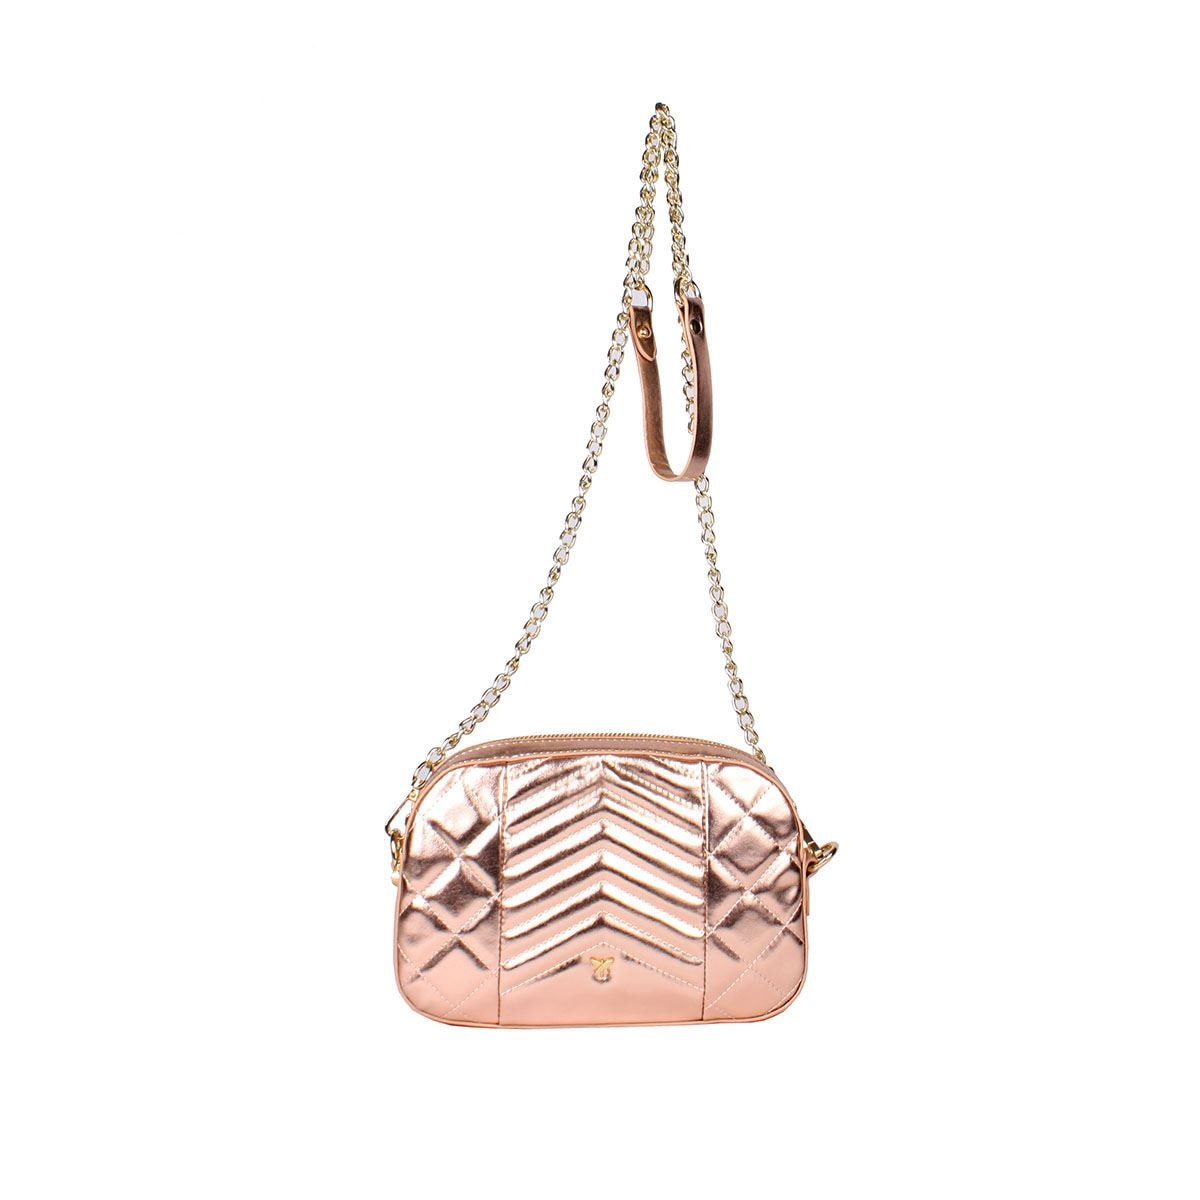 Bolso Pepe Moll cross body color Golden